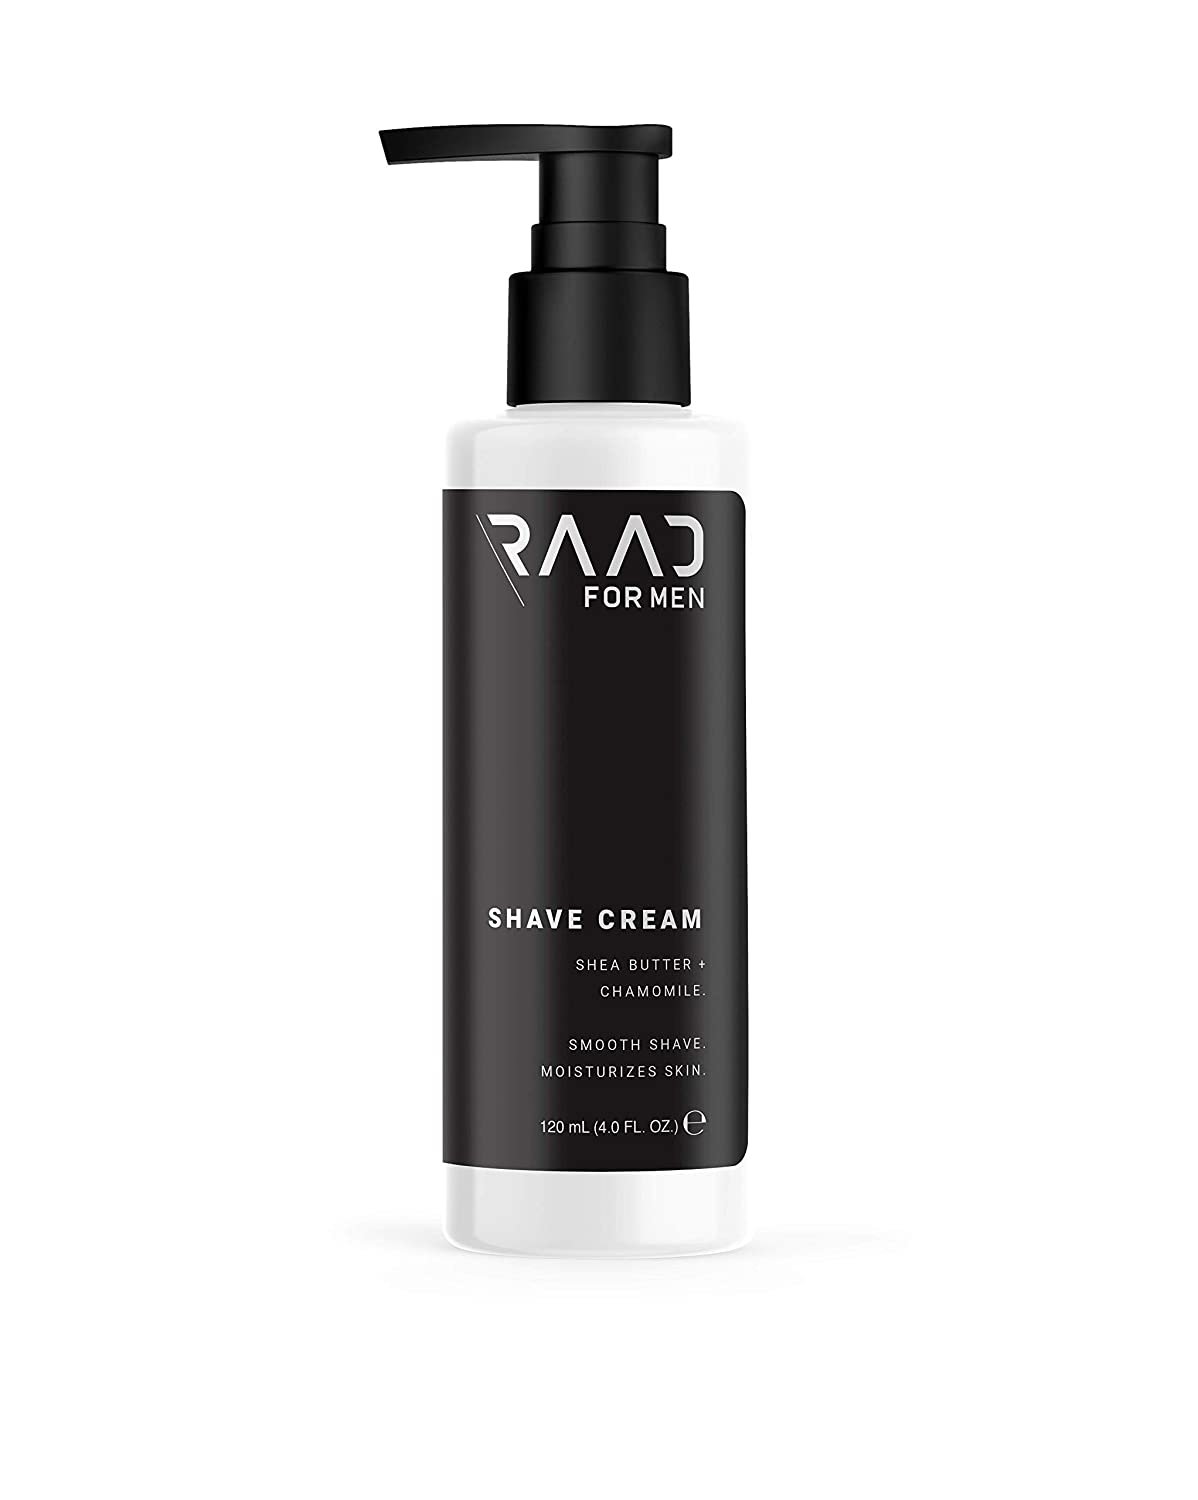 RAAD For Men - Shaving & Moisturizing Cream Lather For Men, Formulated with Shea Butter, Calendula & Chamomile, Natural Ingredients